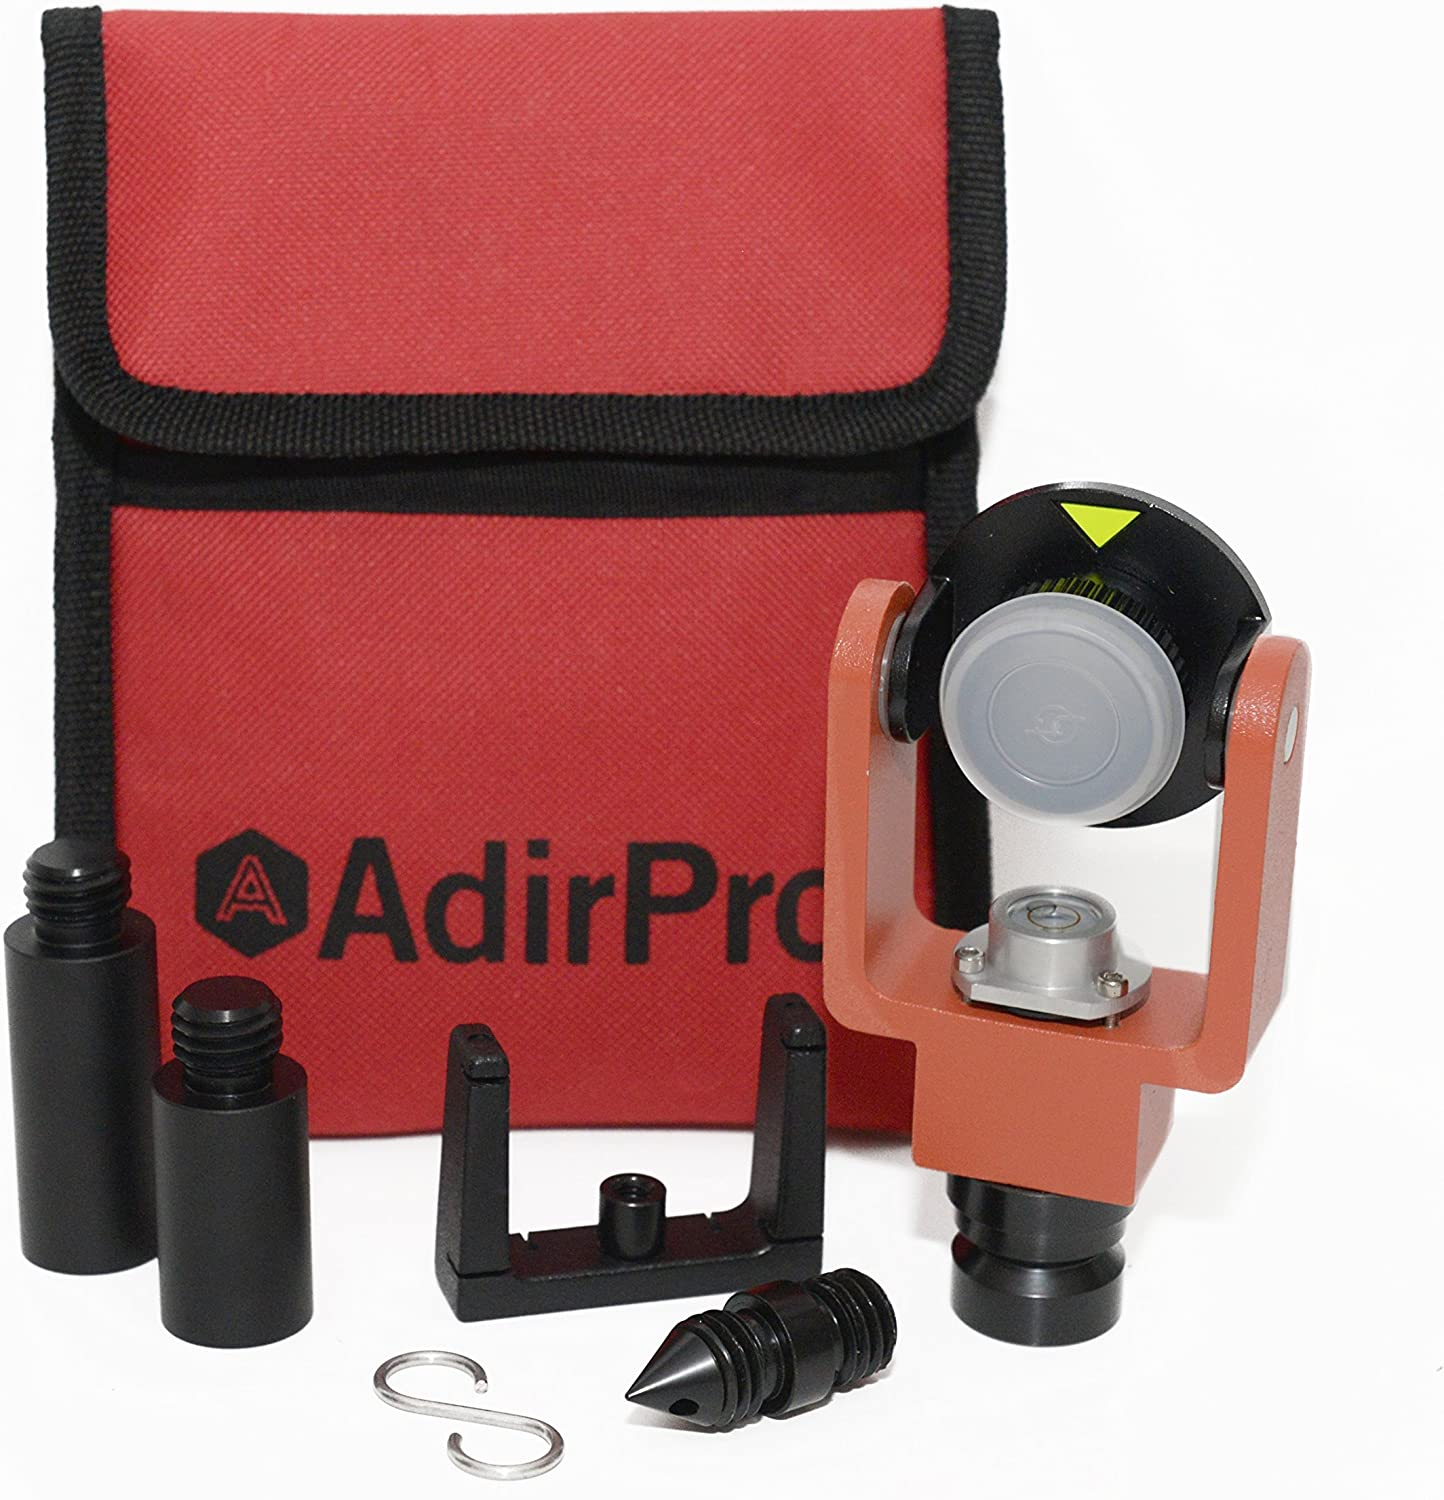 AdirPro Mini Quantity limited Prism System Vial Max 44% OFF Center 720-04 with